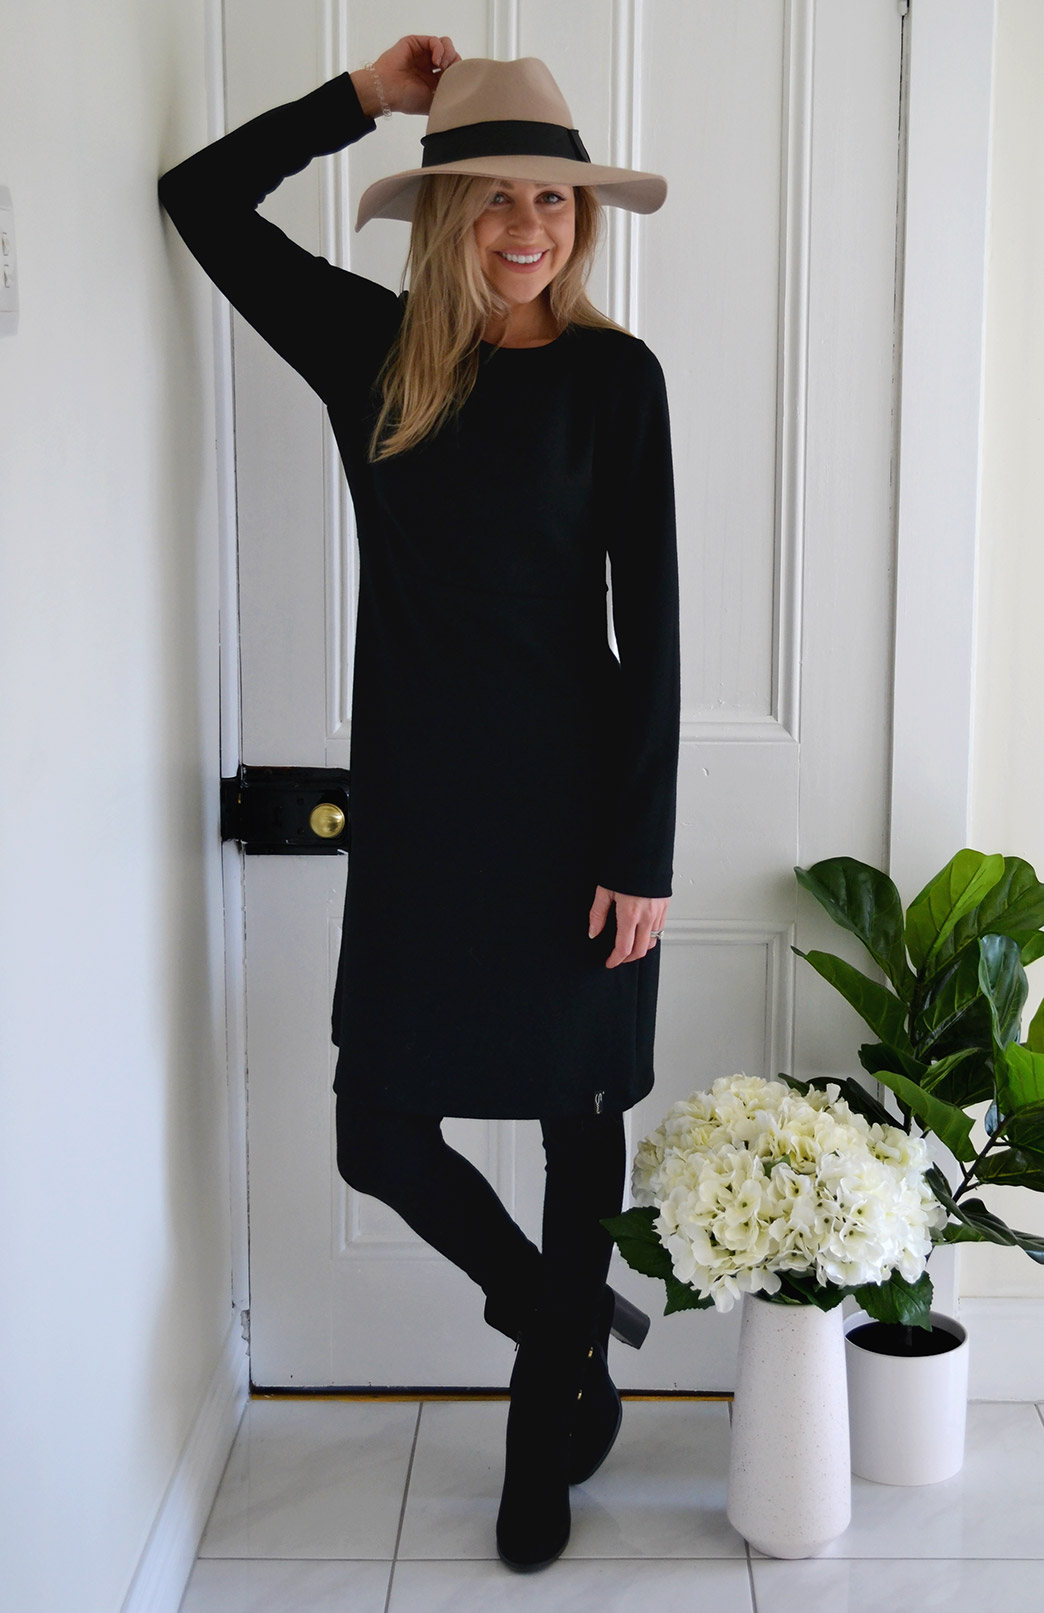 Sascha Straight Dress - Women's Superfine Merino Wool Black Long Sleeved Heavyweight Winter Dress - Smitten Merino Tasmania Australia